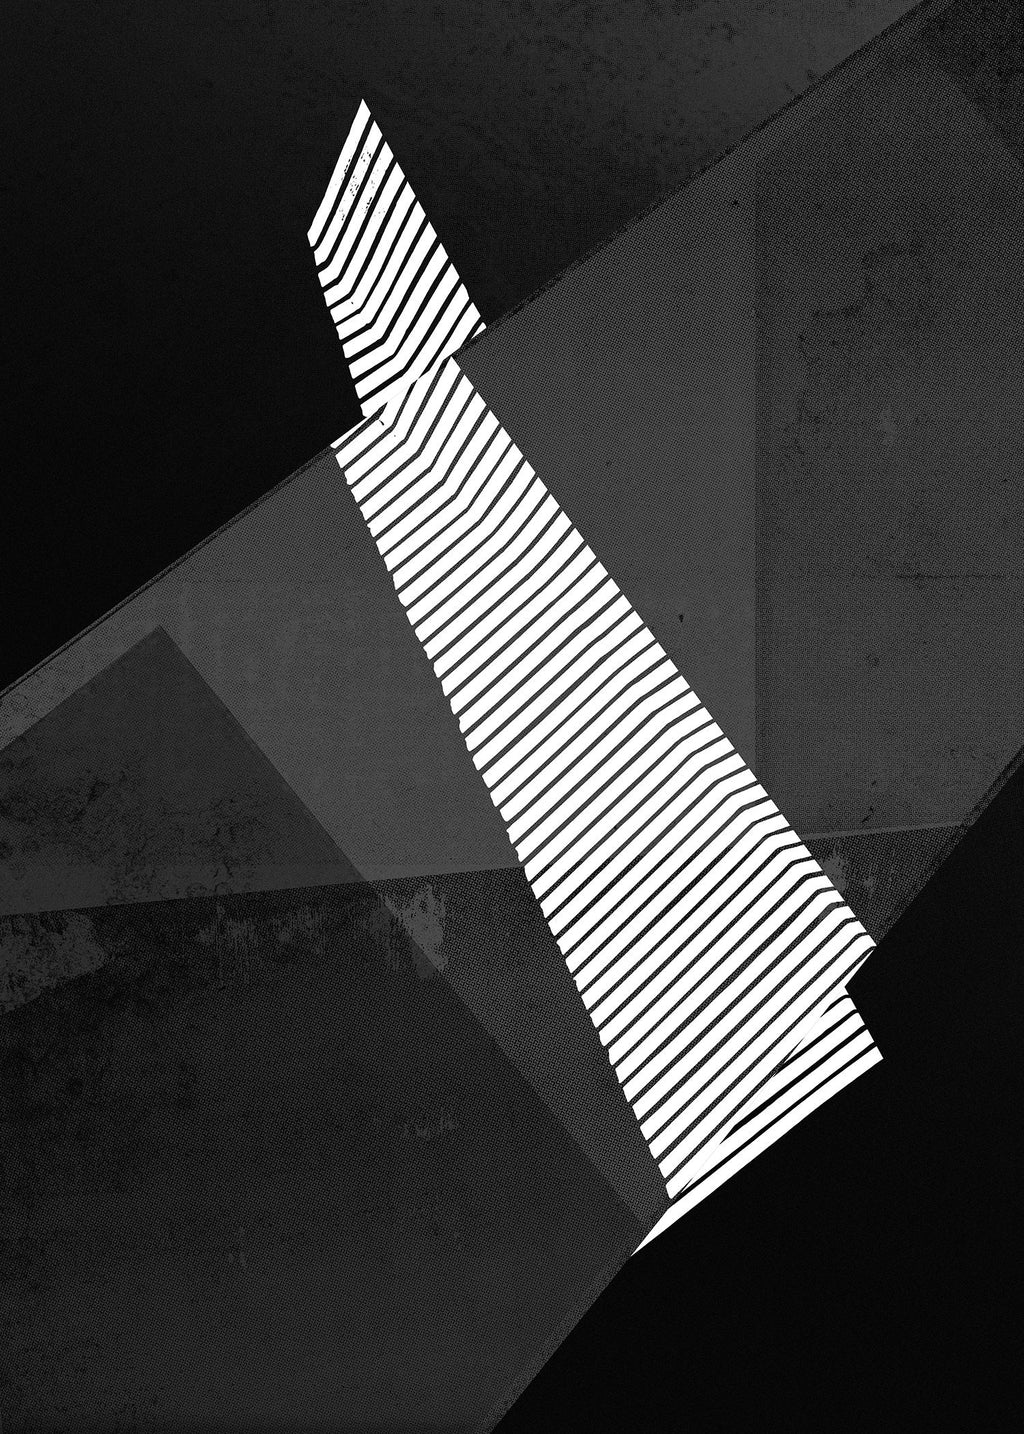 Abstract Angles 2 - Black and White Print